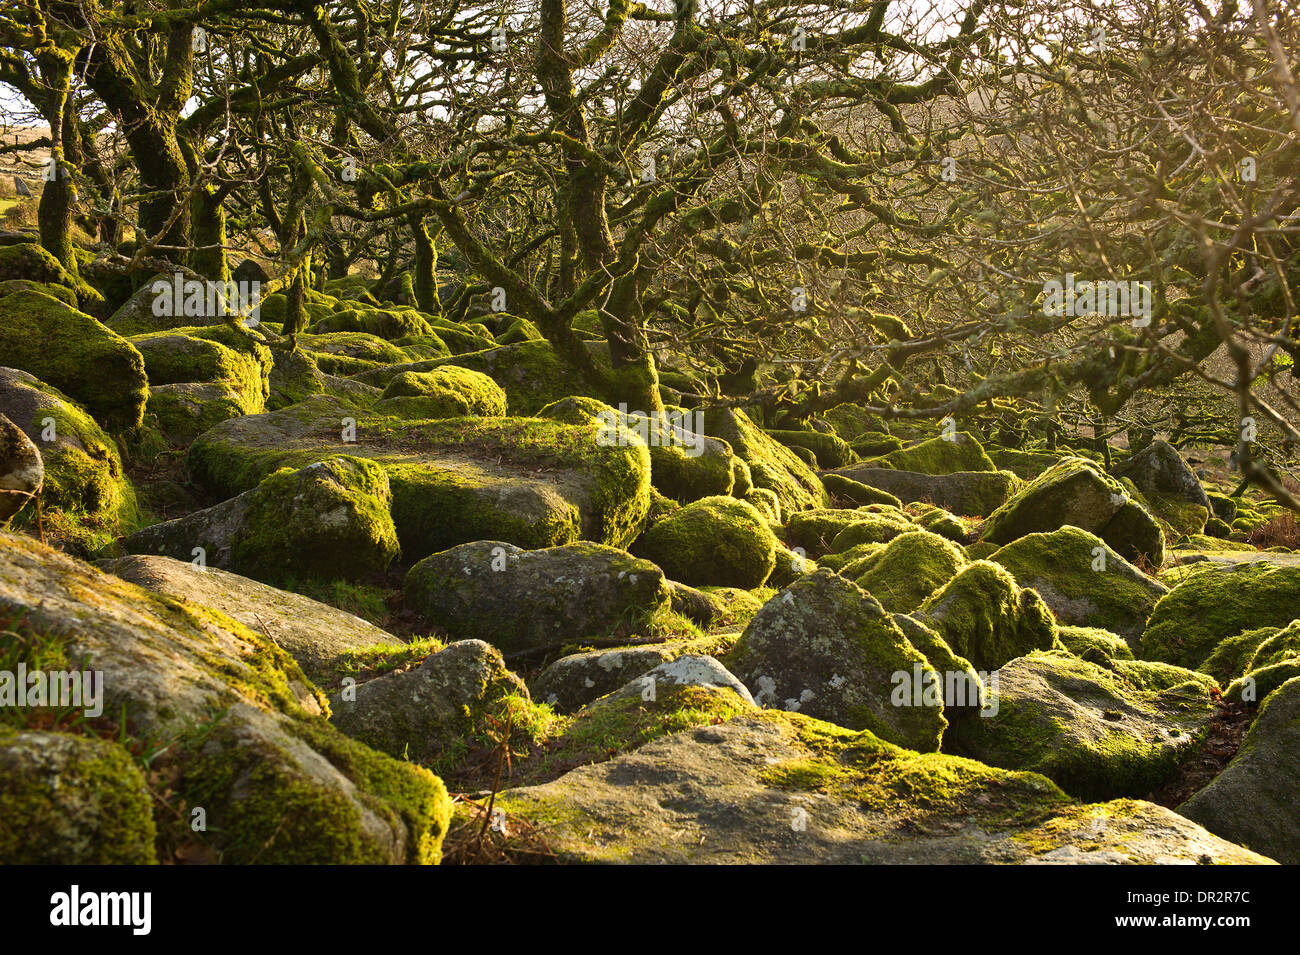 Wistman S Wood An Ancient Upland Oak Wood West Dart River Valley Stock Photo Royalty Free